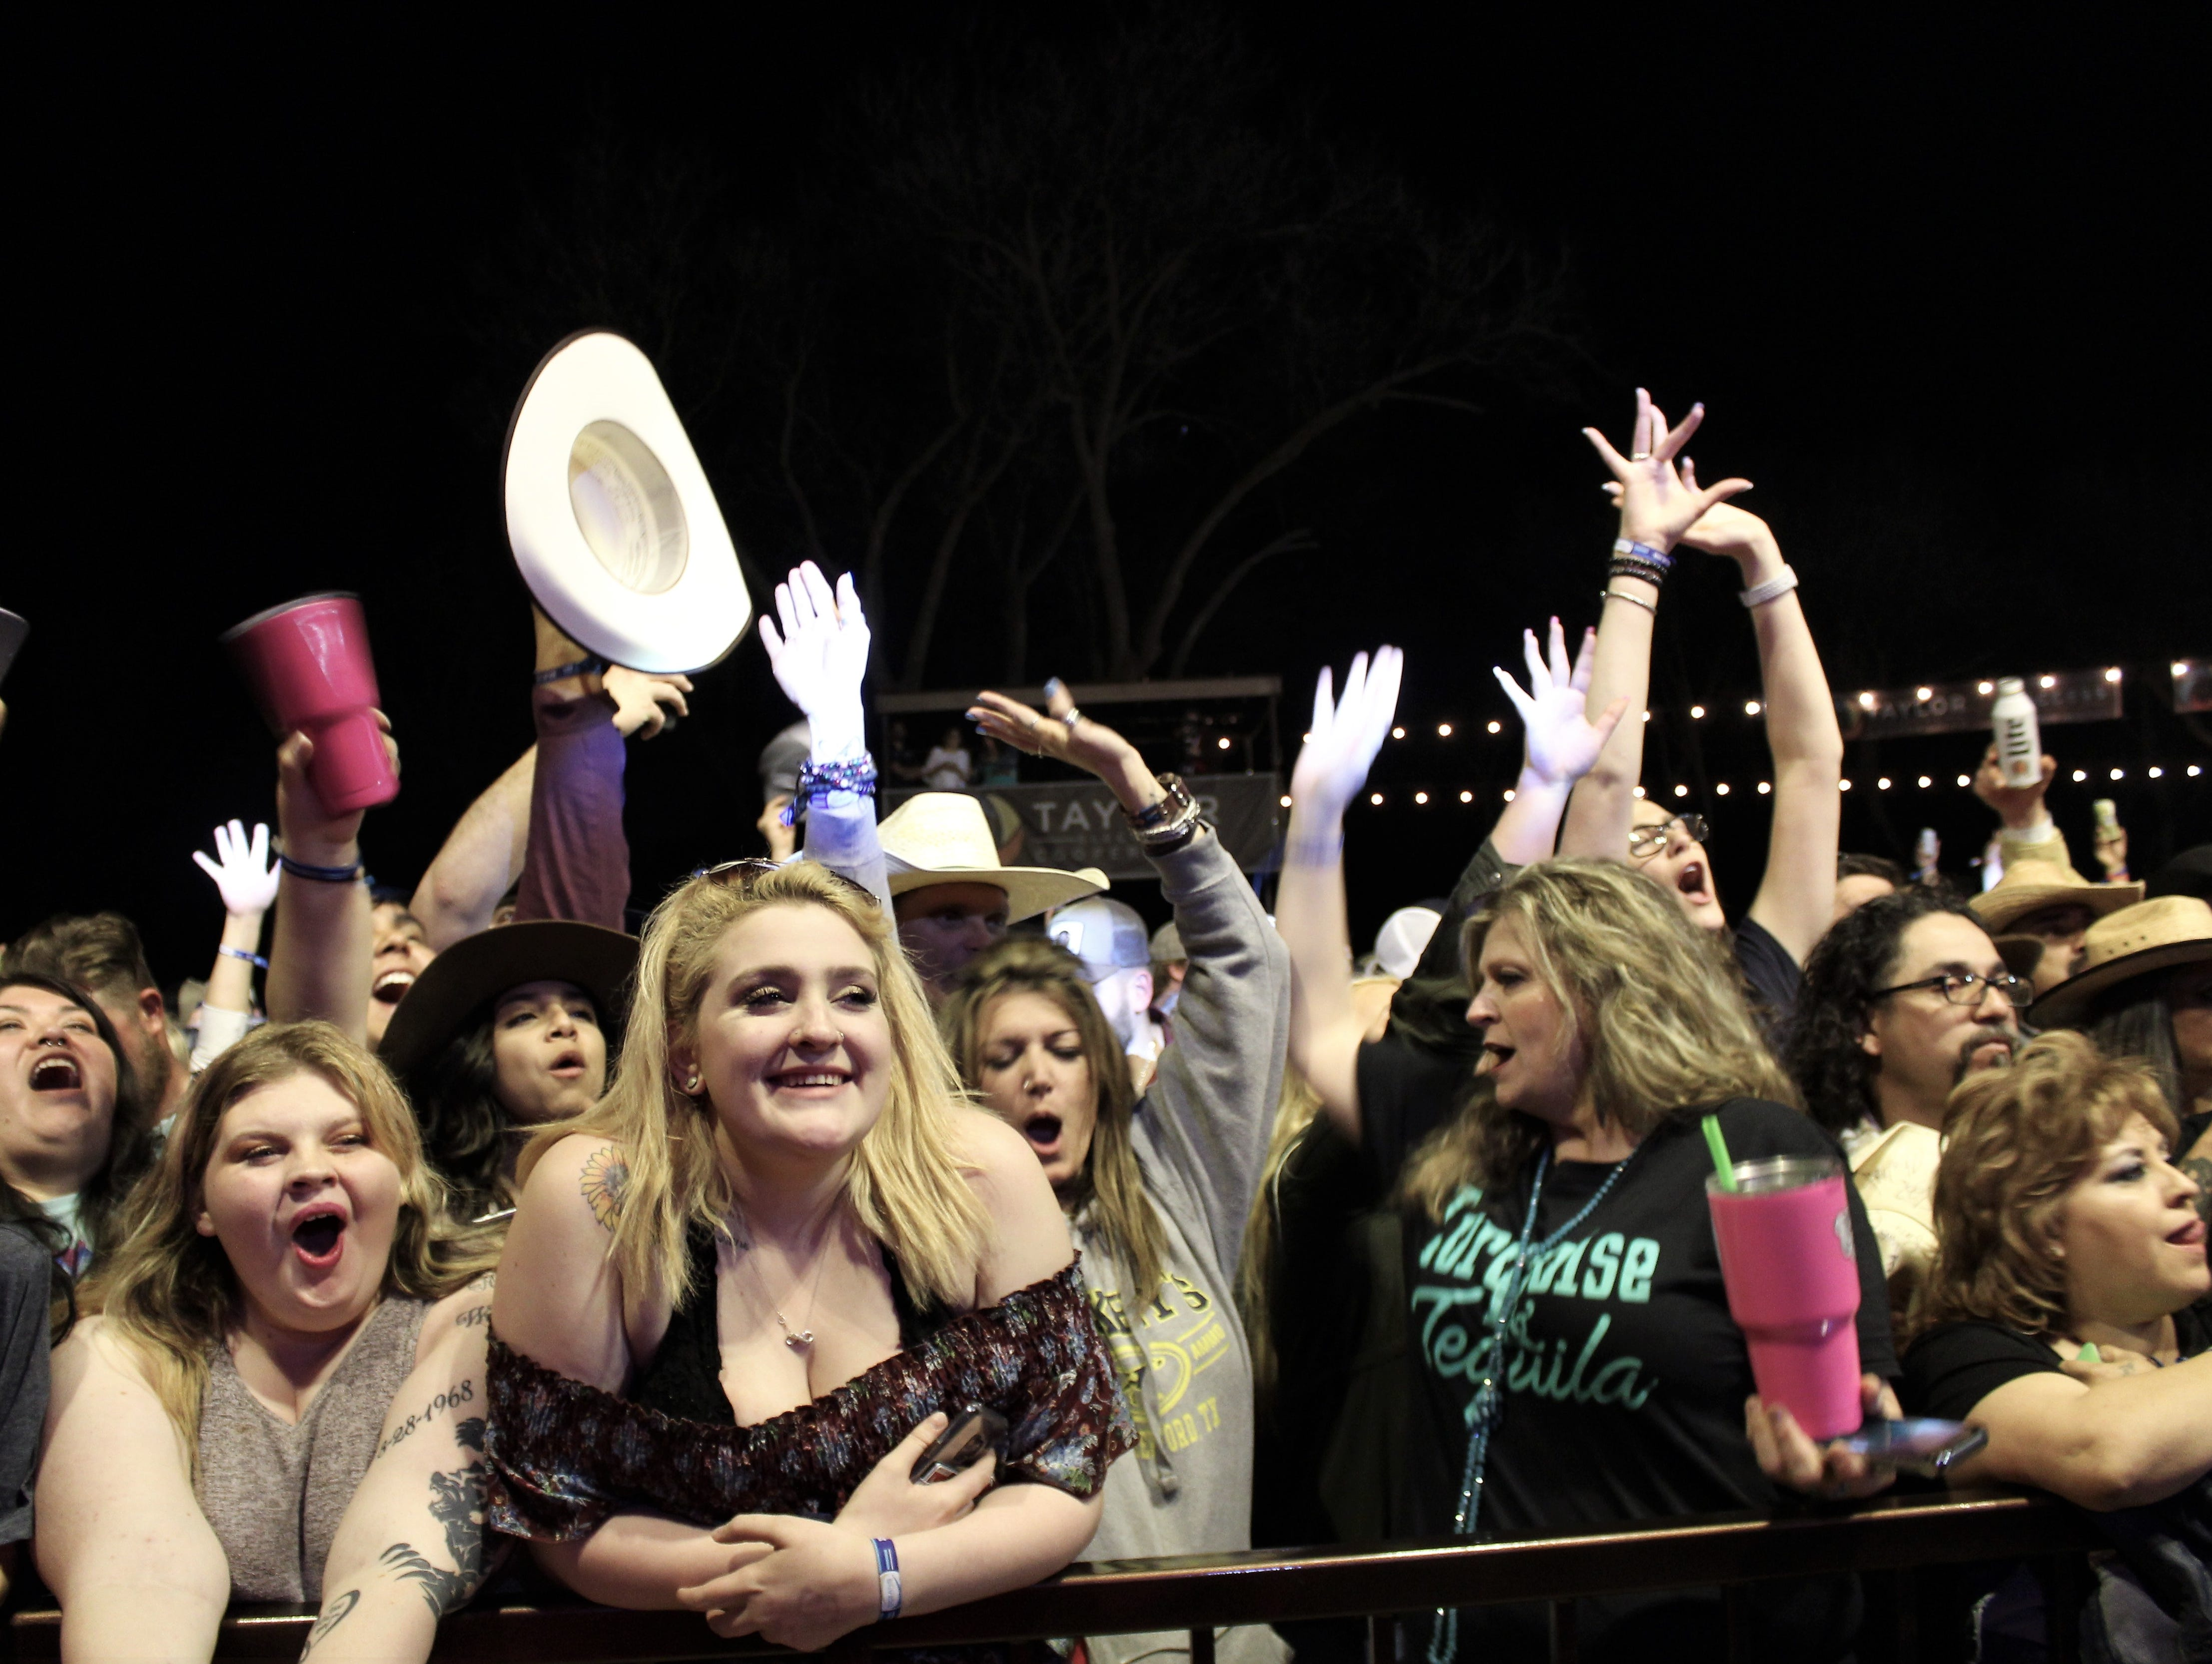 And the crowd goes wild during Midland's set Friday evening March 22, 2019, at the Back Porch of Texas.